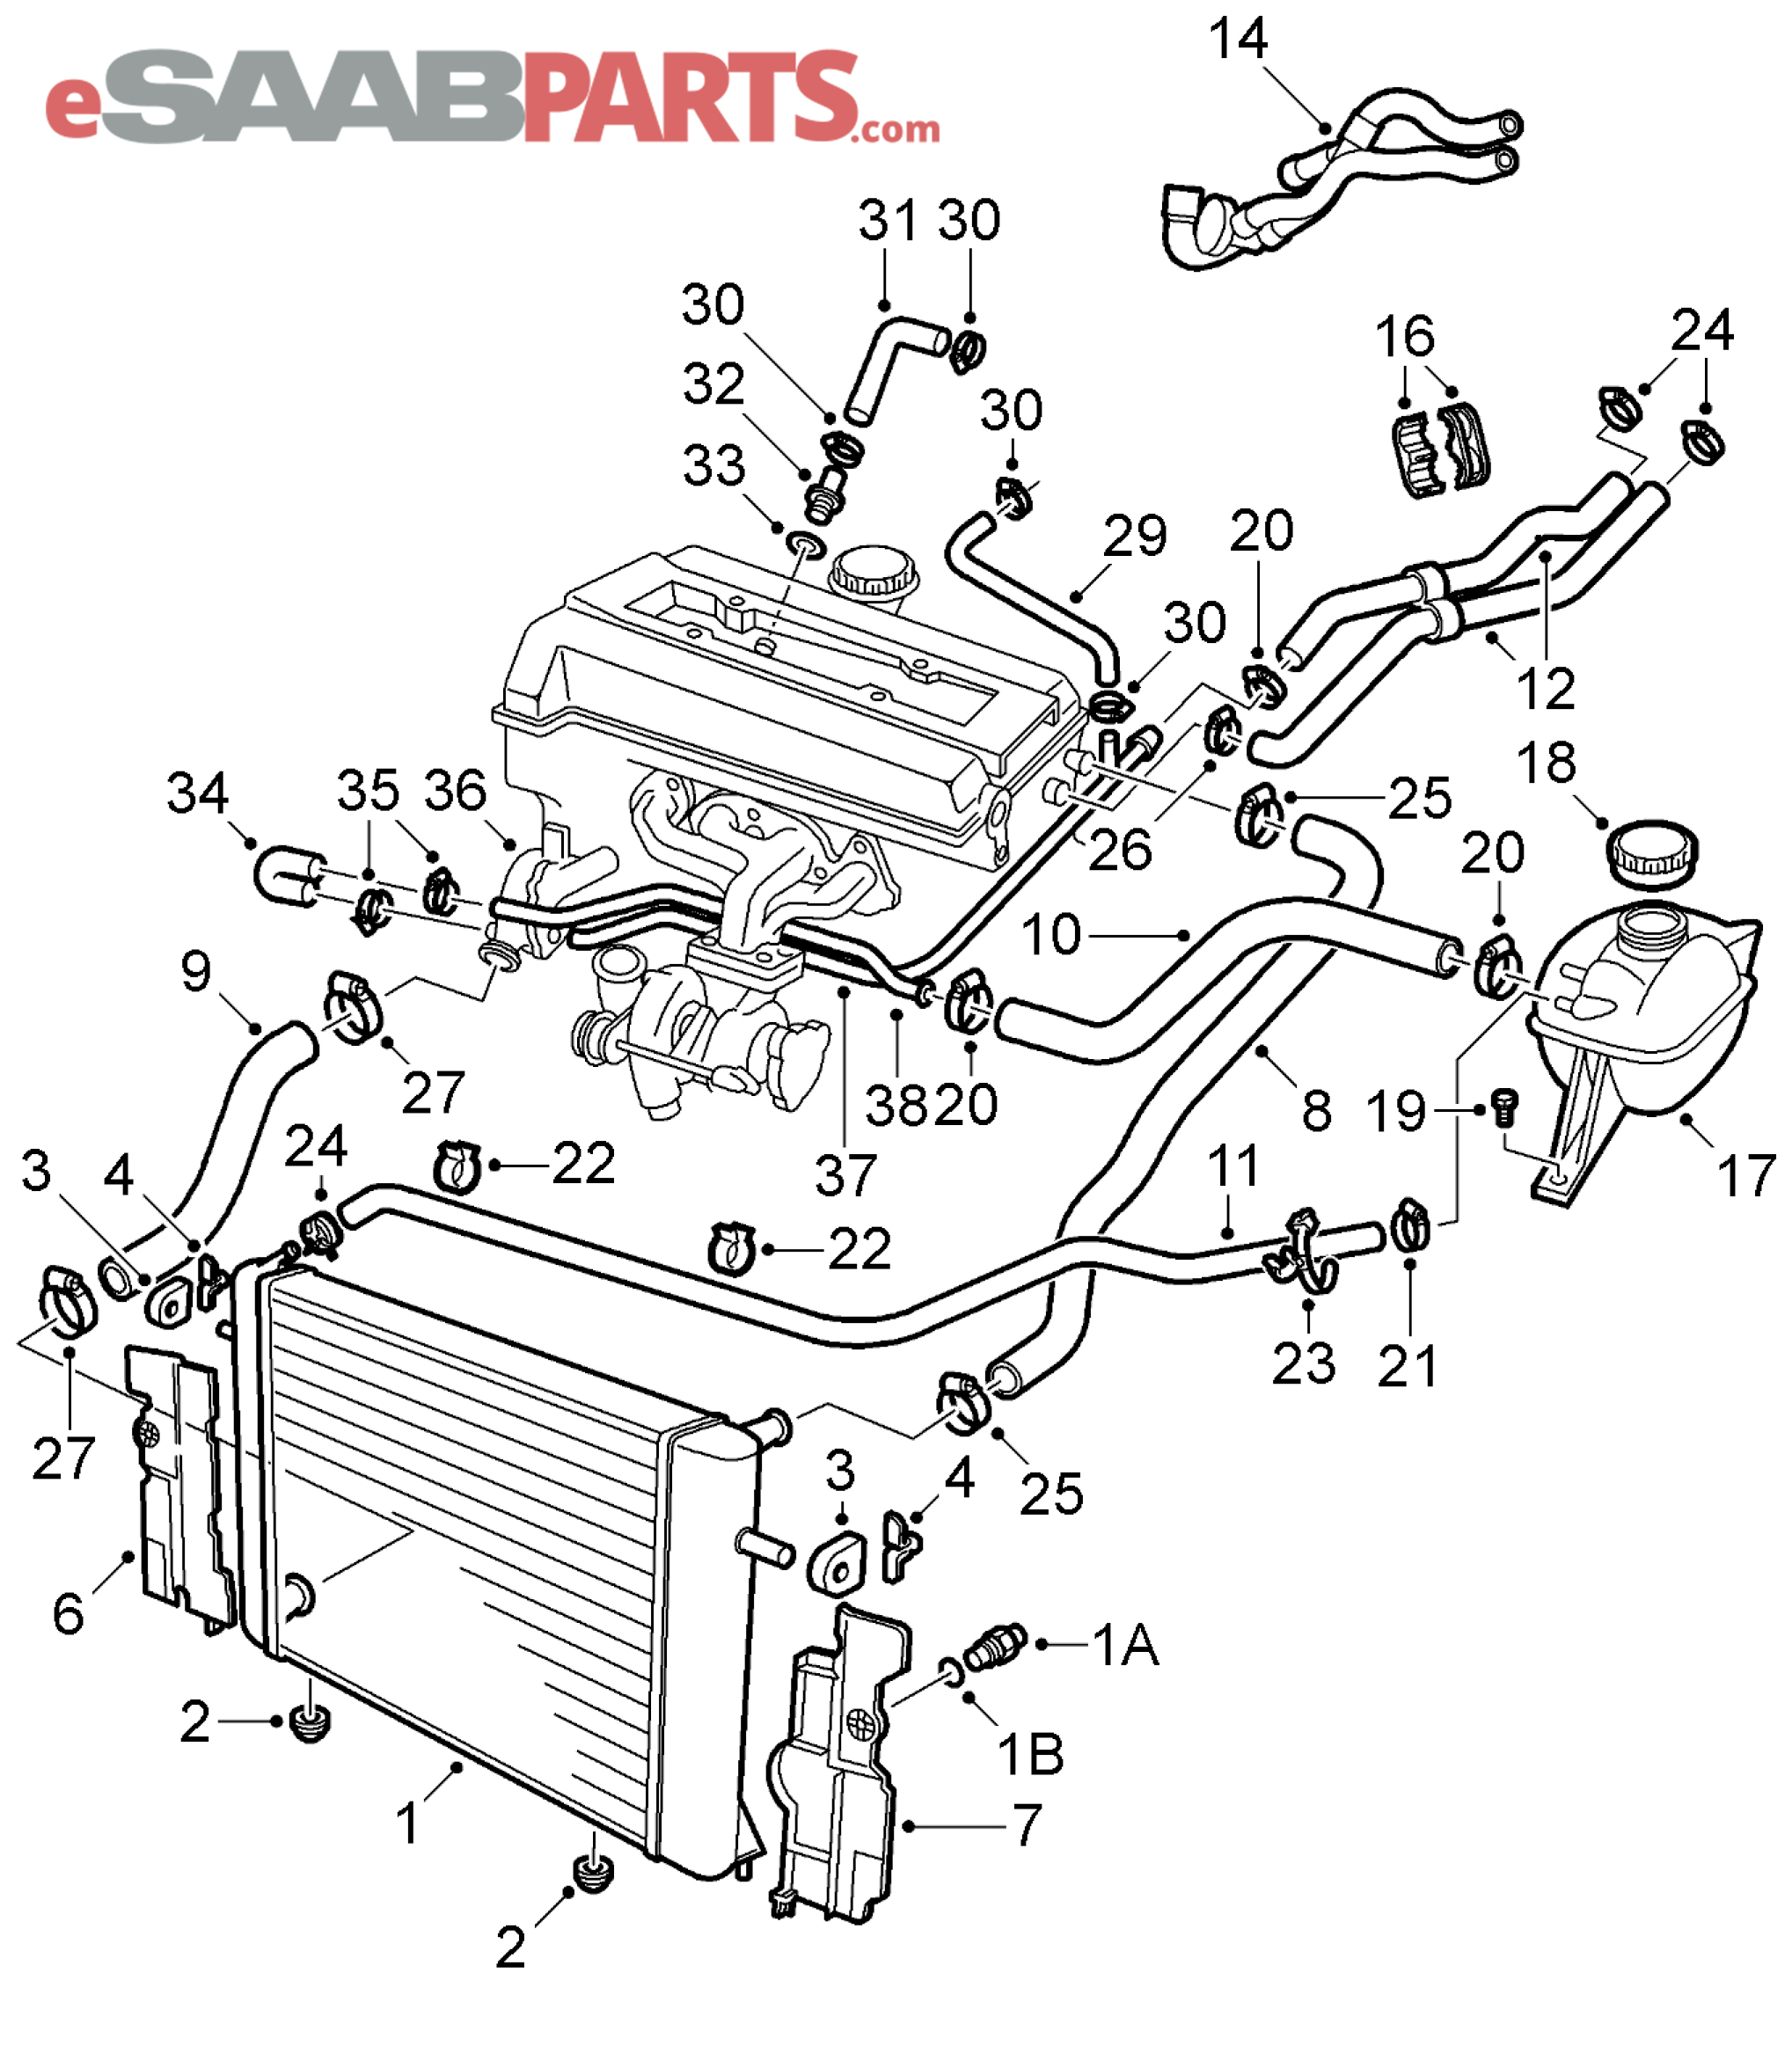 1997 ford f150 4x4 436l fuse box diagram